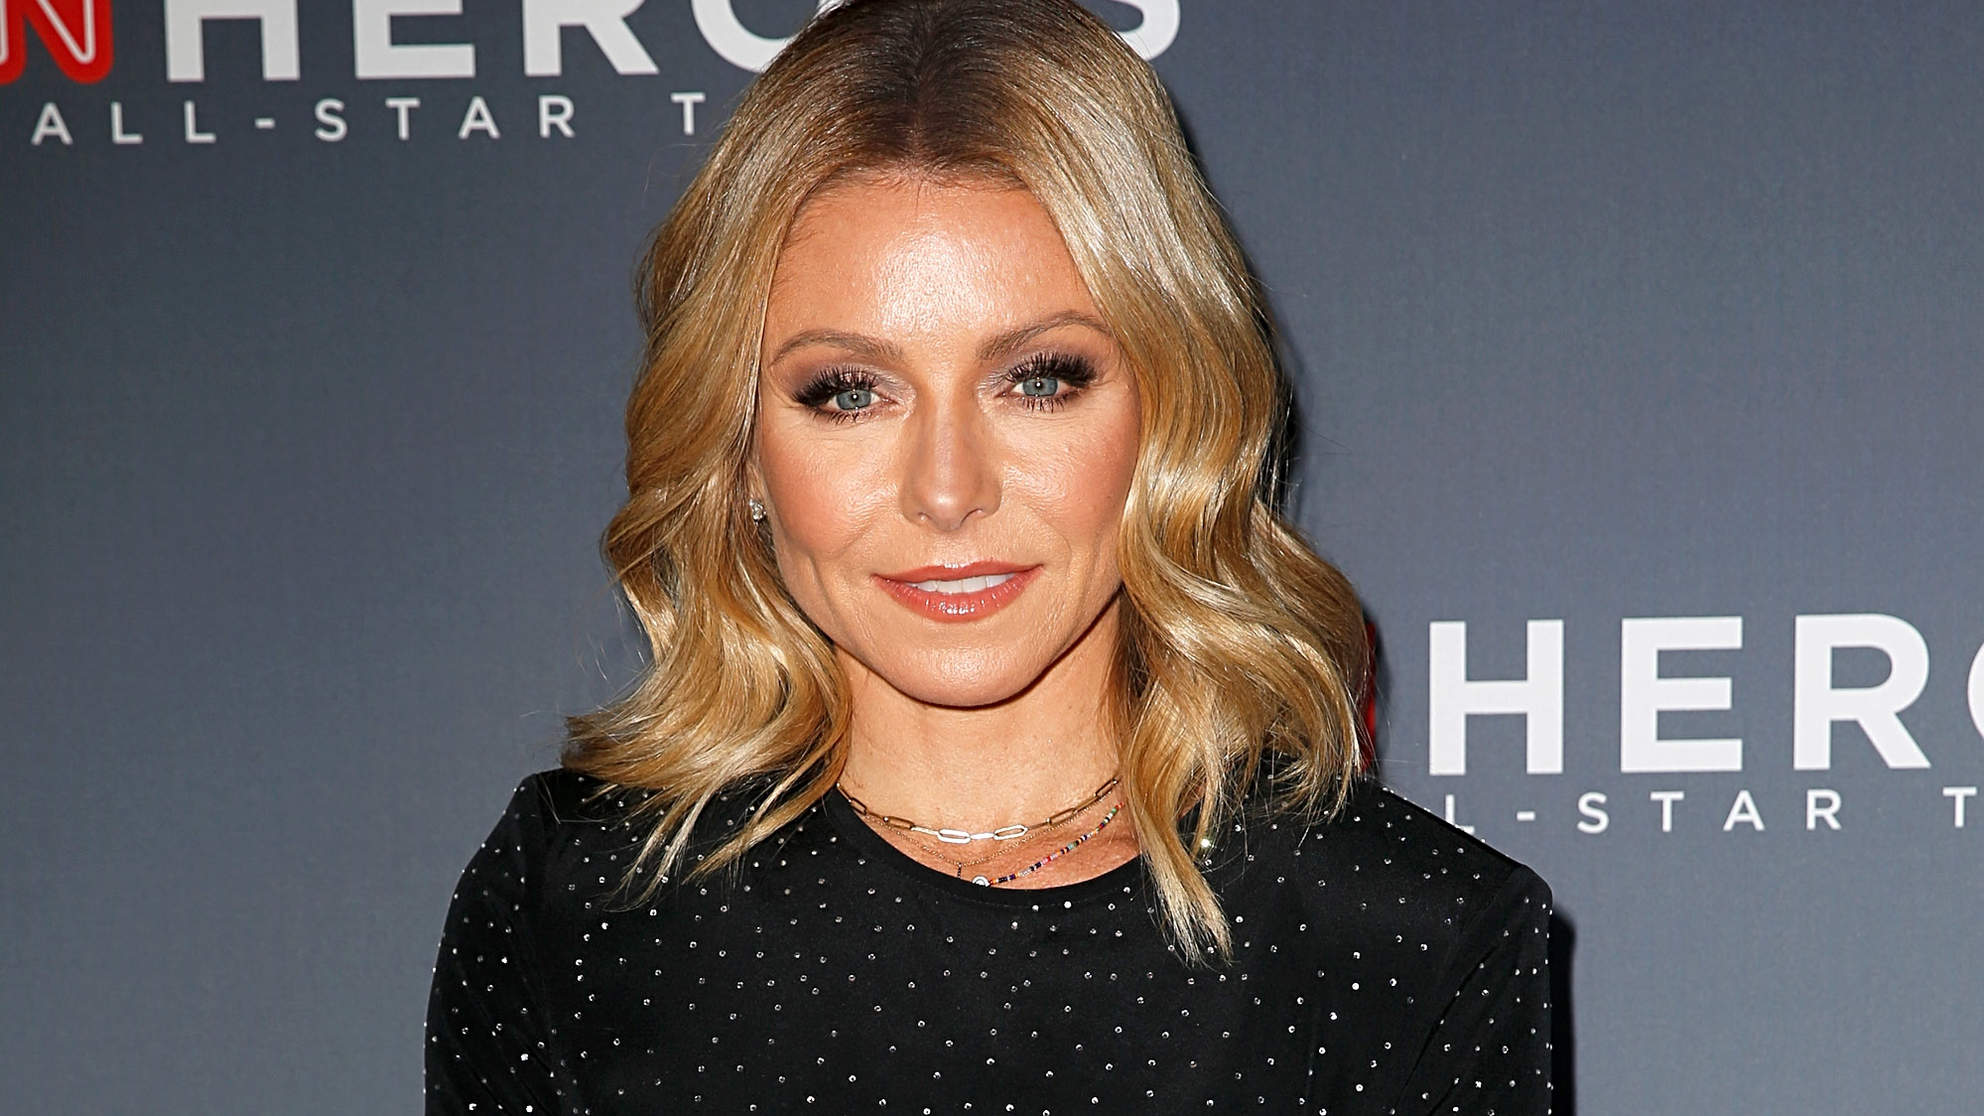 Kelly Ripa and Sarah Jessica Parker's Comfy Party Shoes Deserve a Standing Ovation